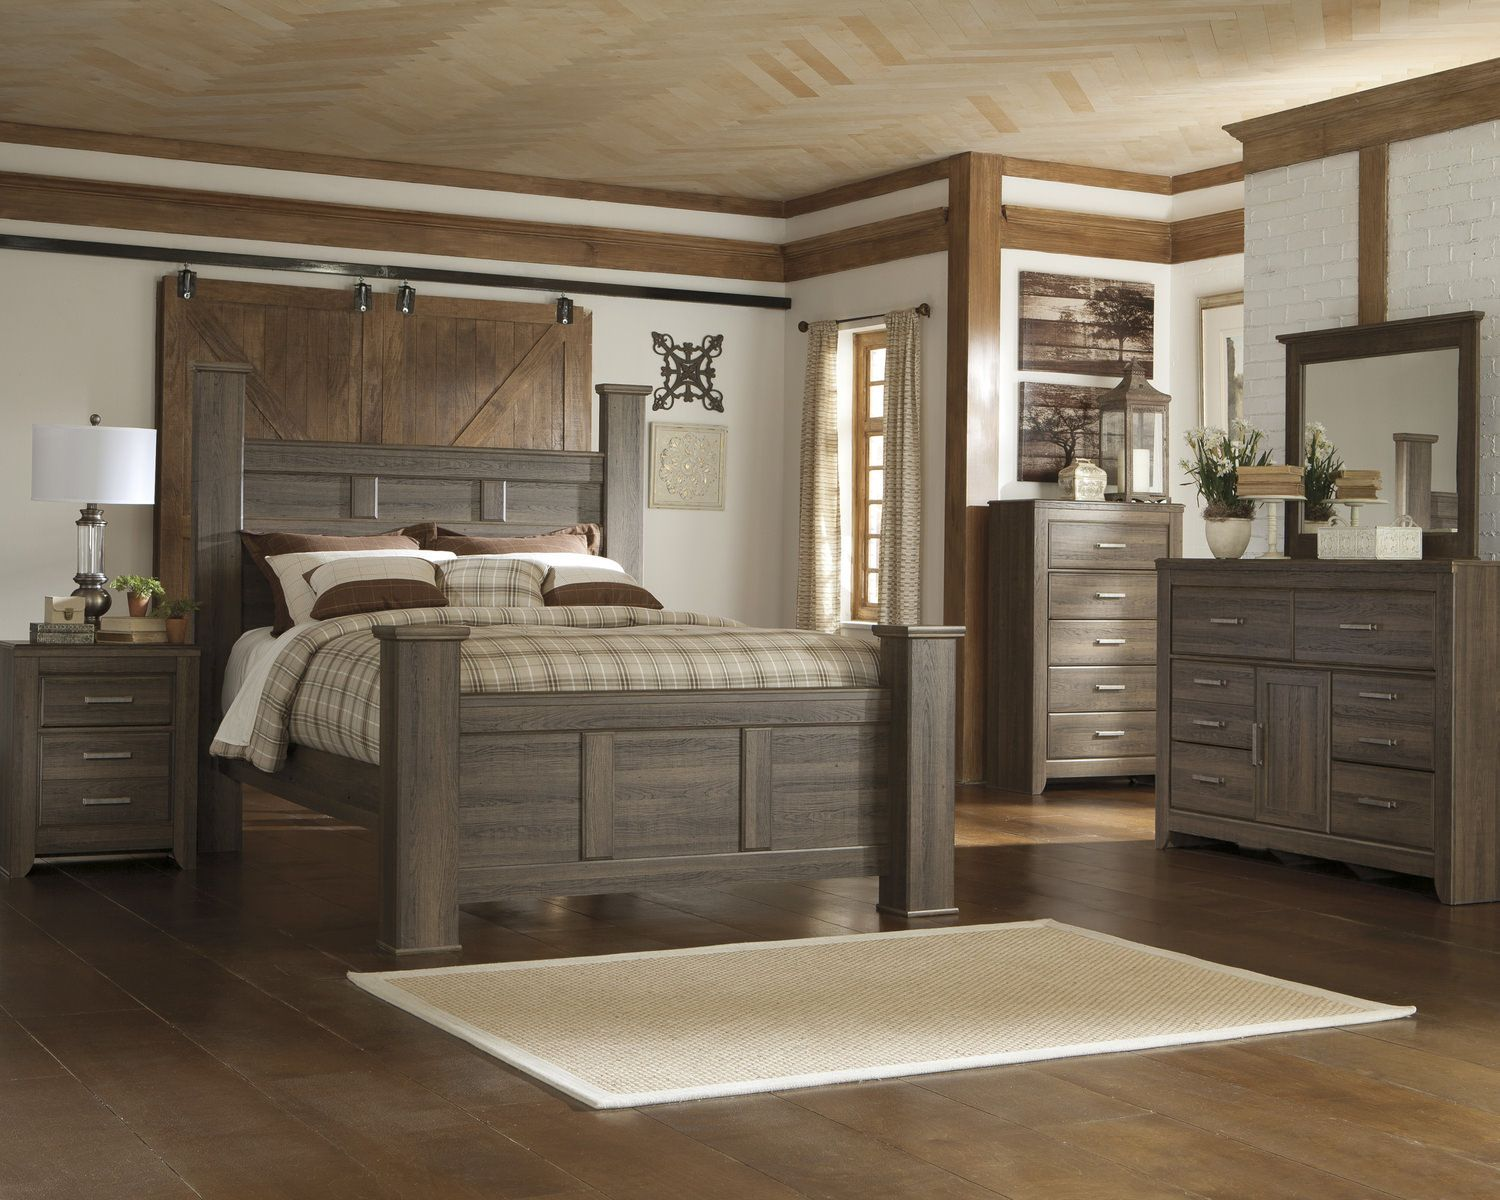 Santa Cruz Bedroom Suite | Farmhouse | Ashley bedroom, Bedroom ...